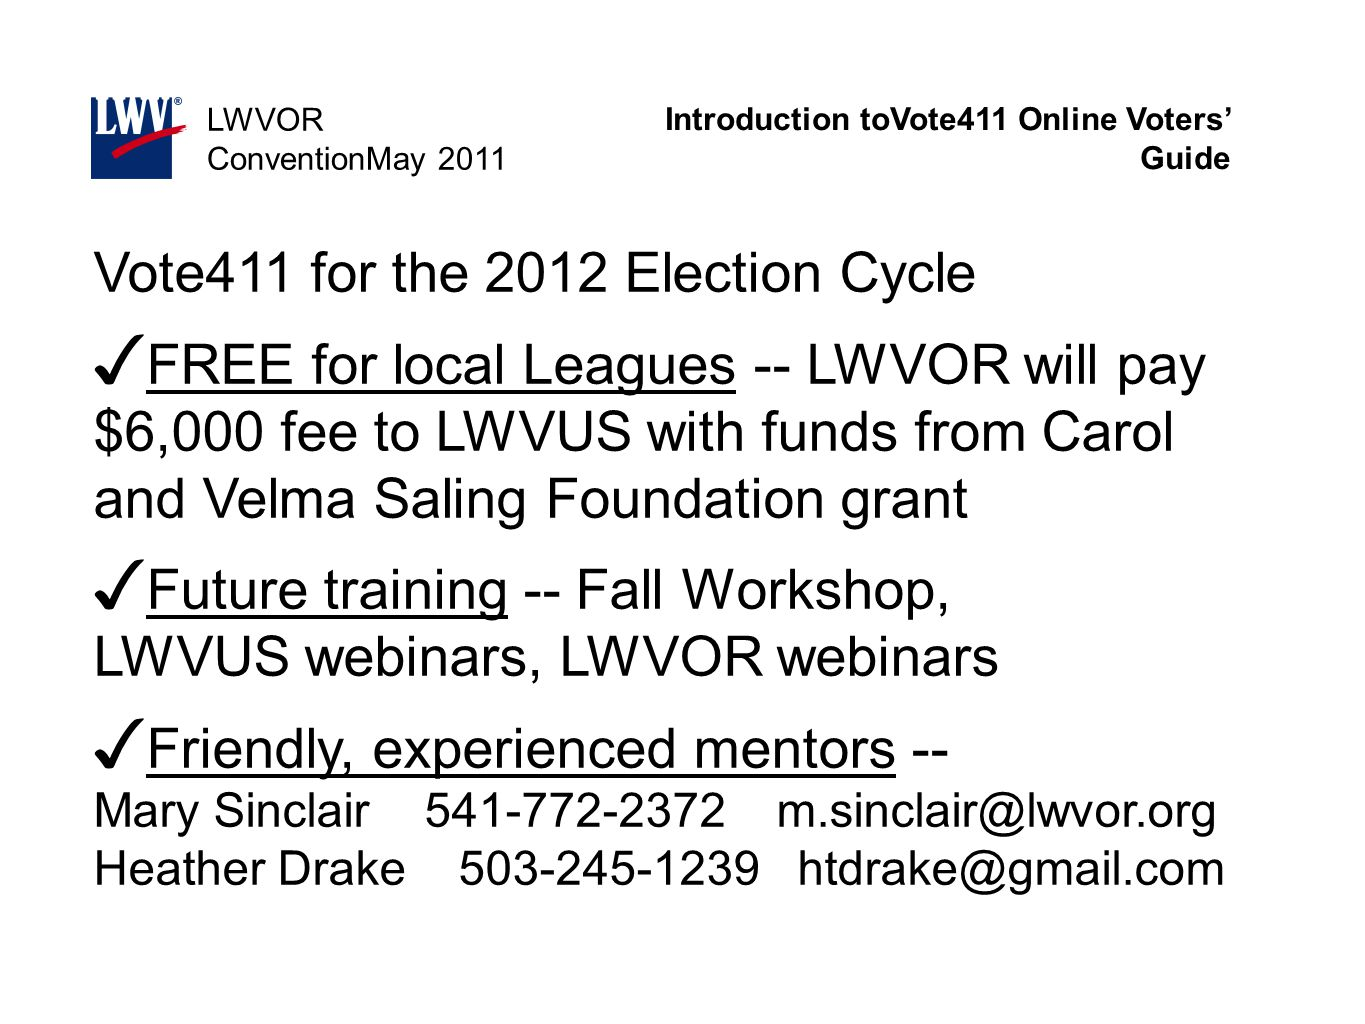 Introduction toVote411 Online Voters' Guide LWVOR ConventionMay 2011 Vote411 for the 2012 Election Cycle ✓ FREE for local Leagues -- LWVOR will pay $6,000 fee to LWVUS with funds from Carol and Velma Saling Foundation grant ✓ Future training -- Fall Workshop, LWVUS webinars, LWVOR webinars ✓ Friendly, experienced mentors -- Mary Sinclair 541-772-2372 m.sinclair@lwvor.org Heather Drake 503-245-1239 htdrake@gmail.com